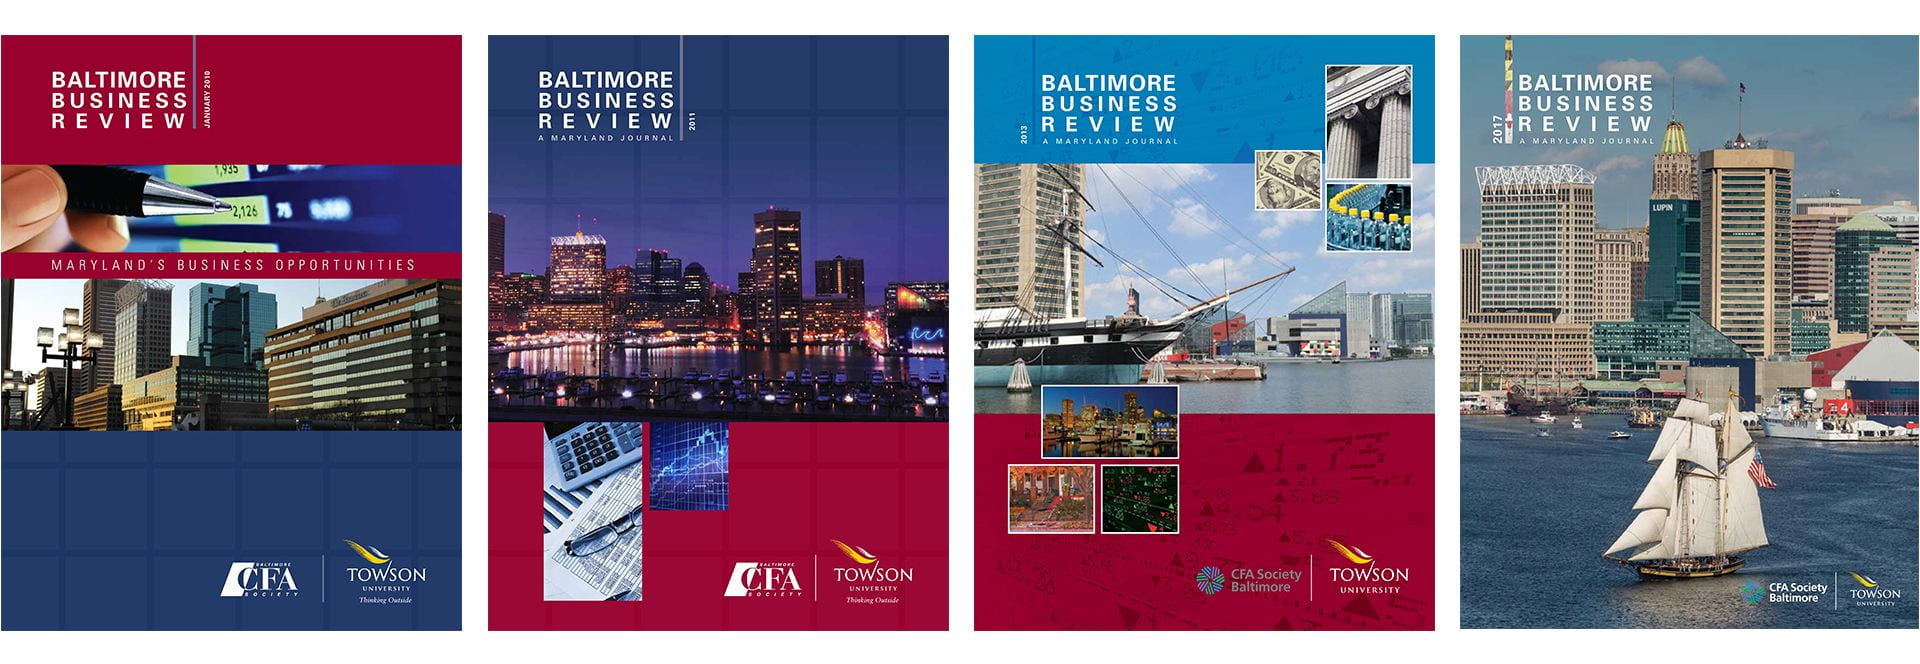 Covers of Past Baltimore Business Reviews